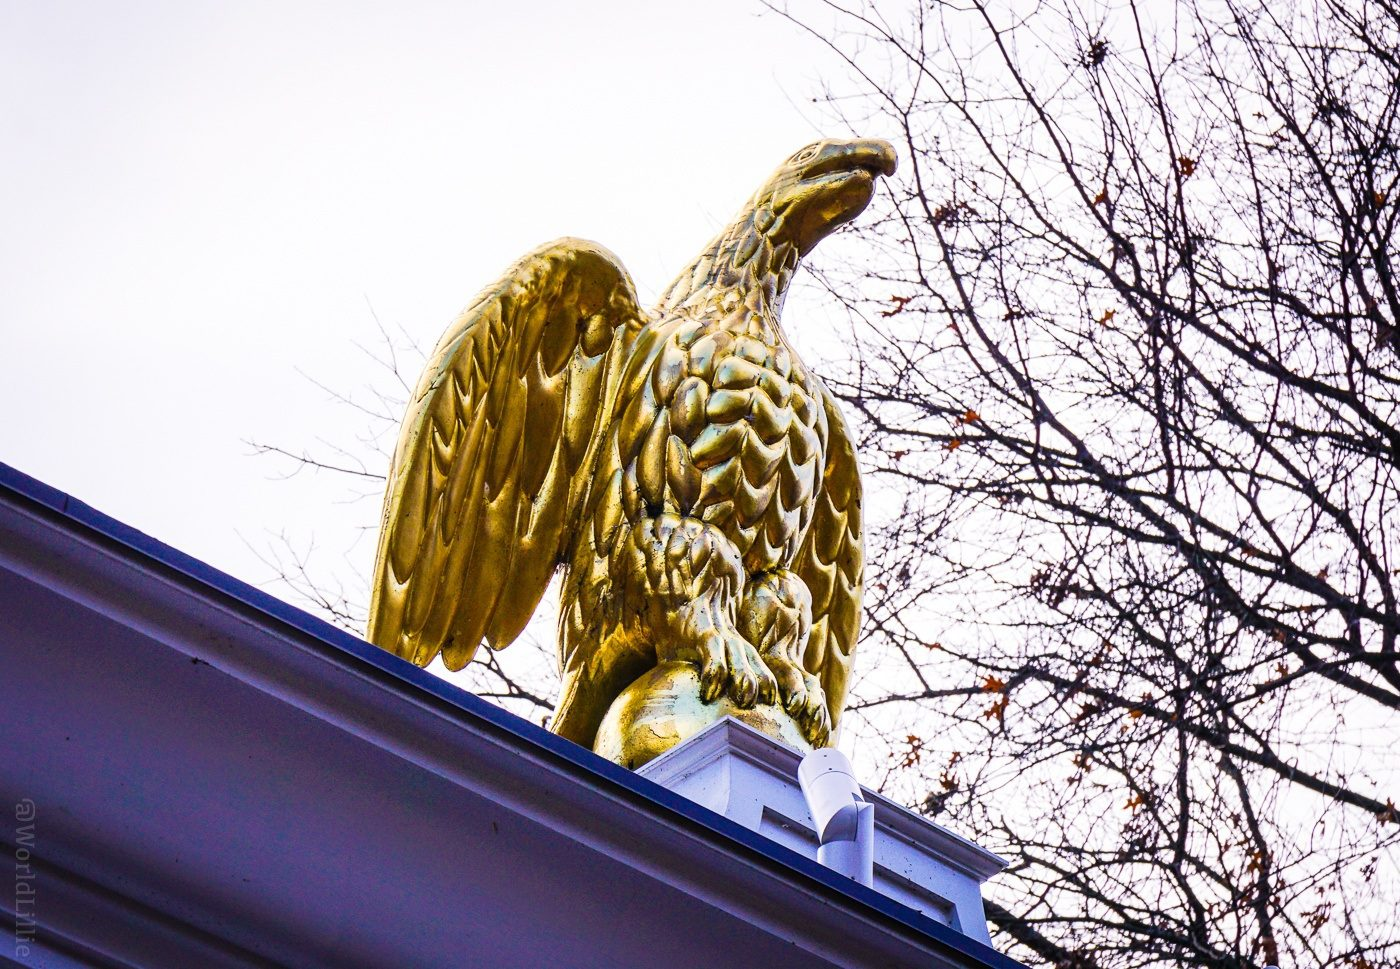 The eagle icon of the Woodstock Inn and Resort, VT